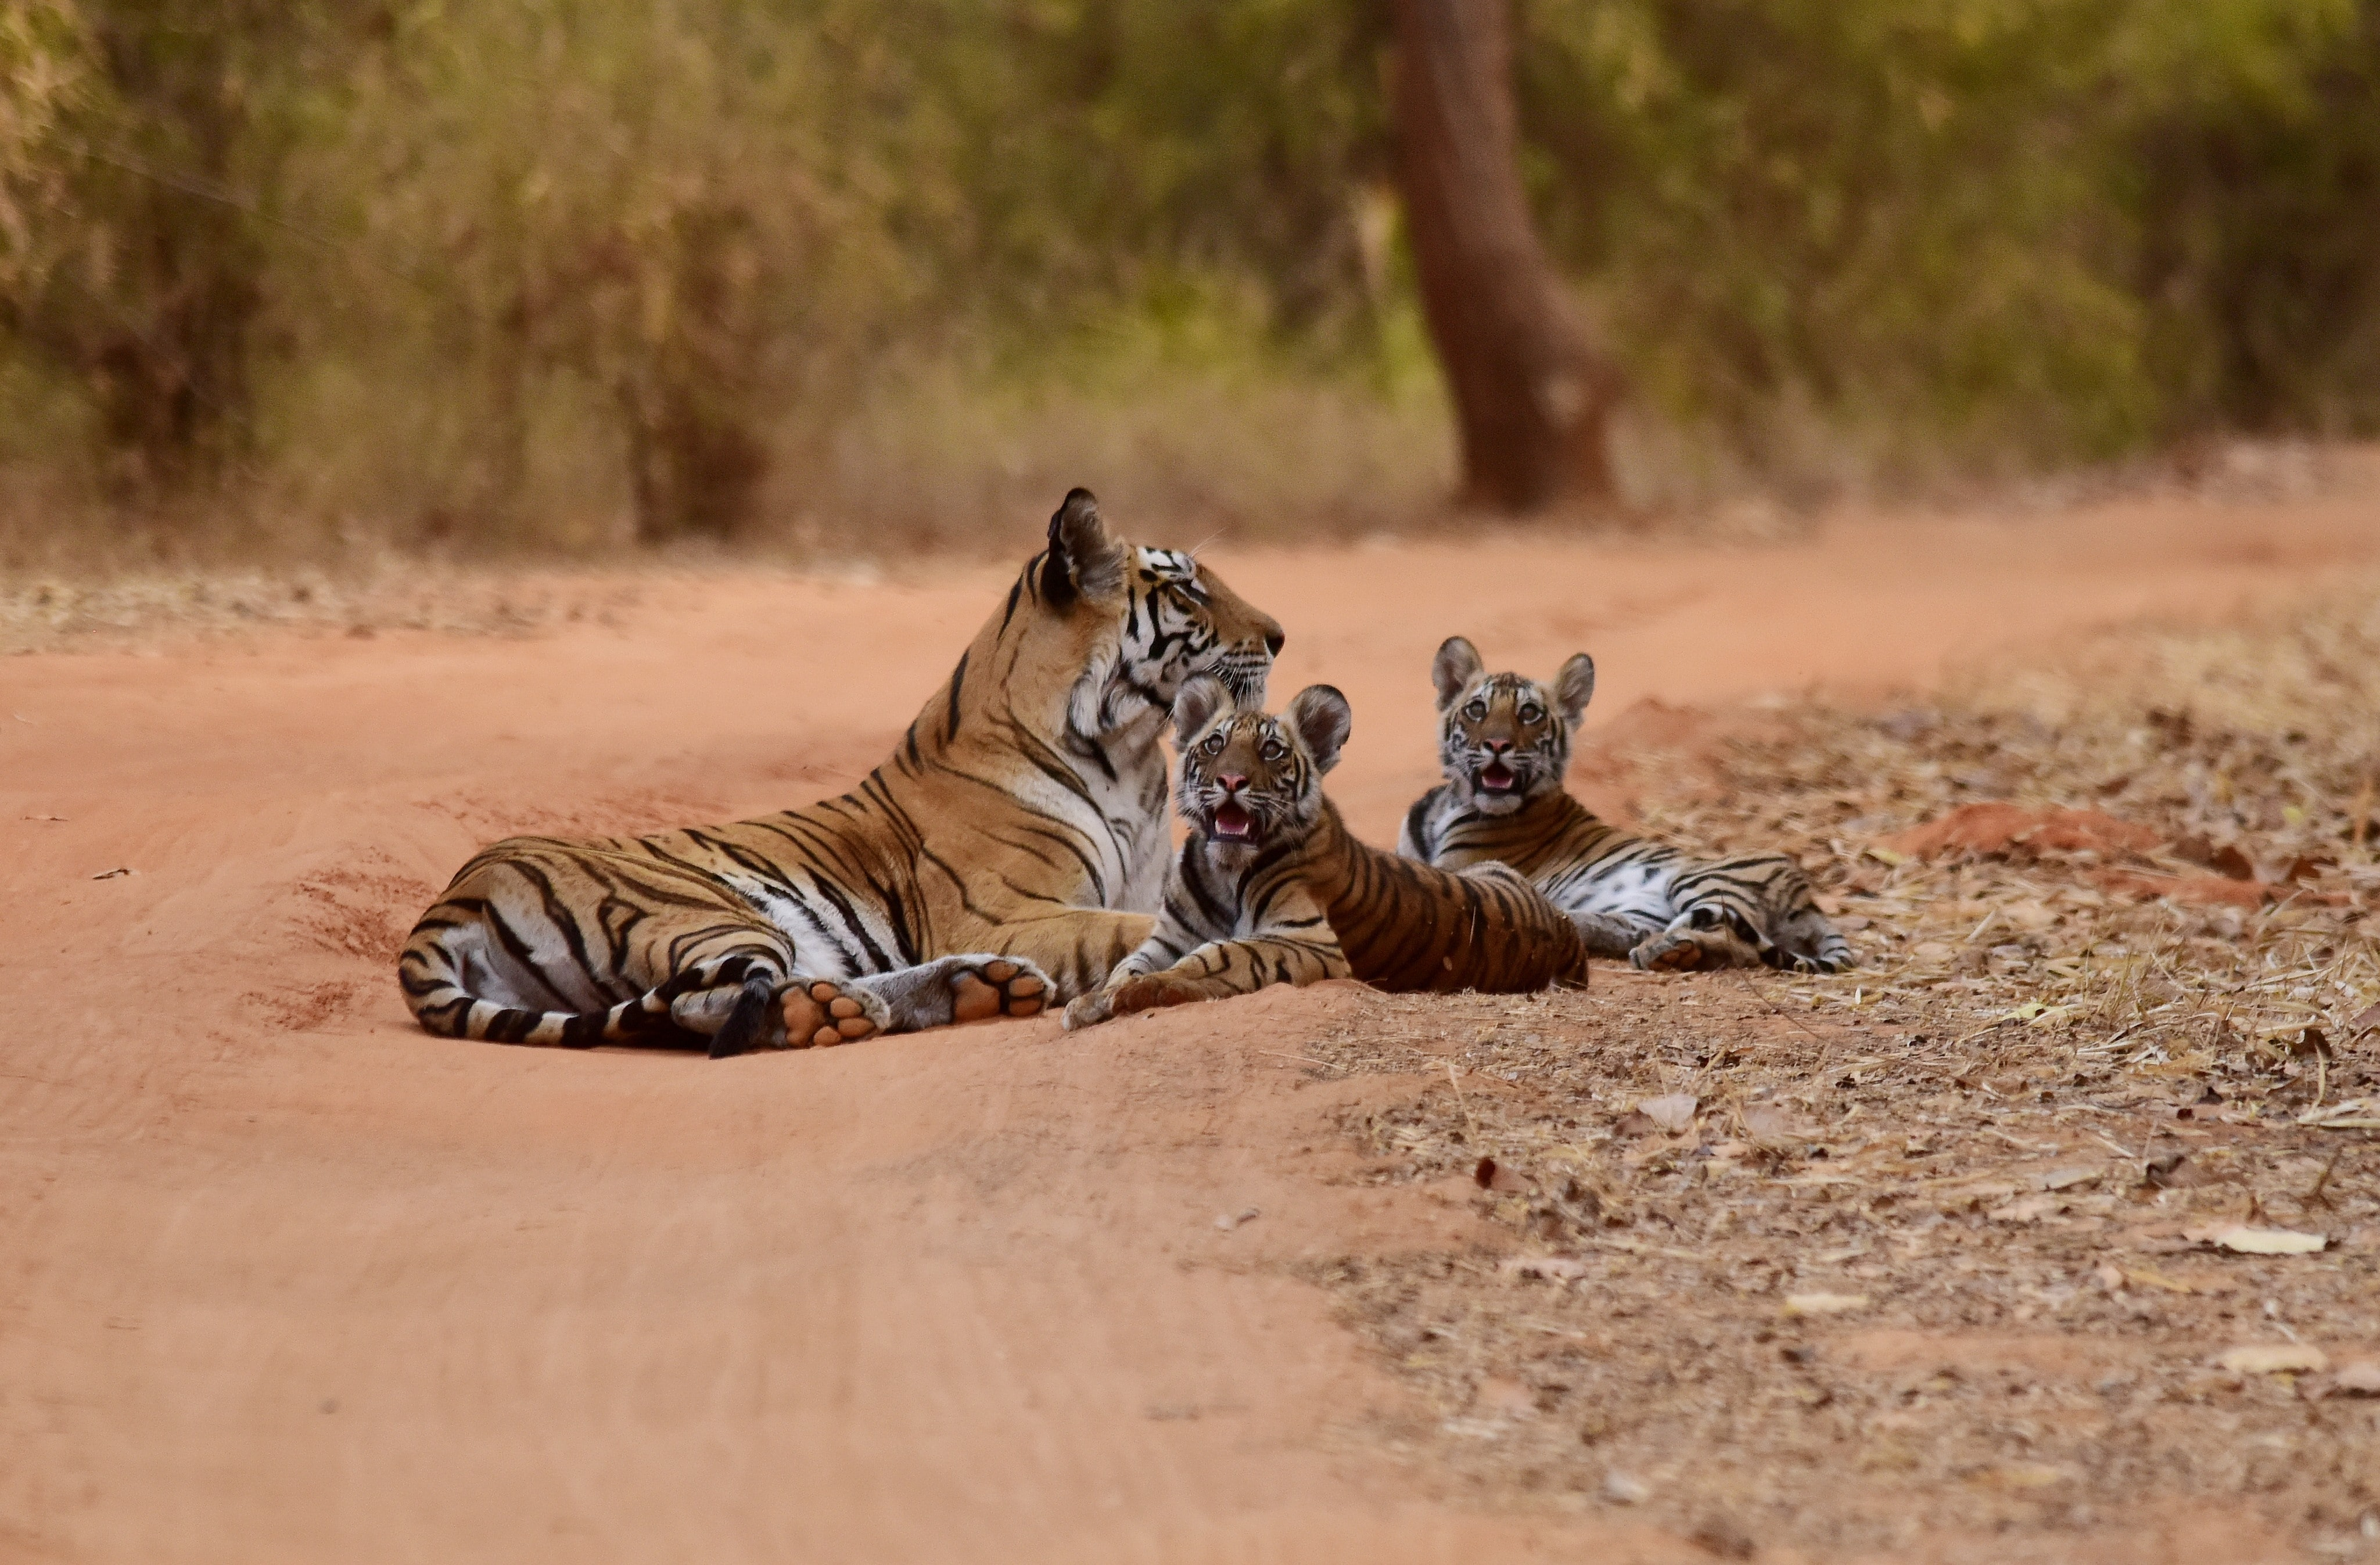 Tiger and cubs lying on dusty dirt road with trees and bush, Bandhavgarh National Park